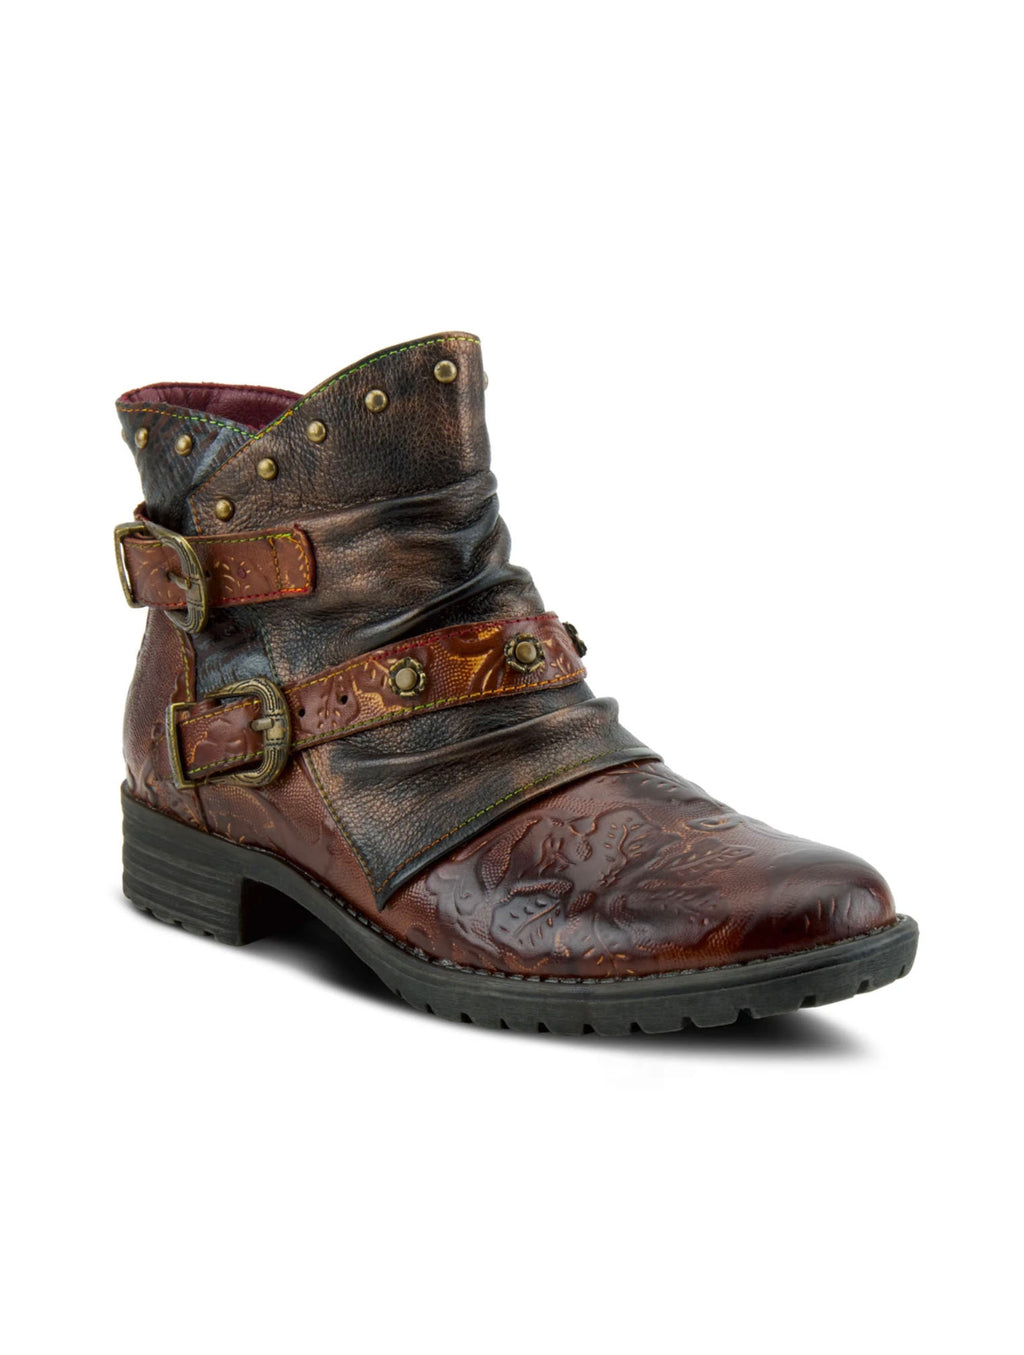 L'Artiste Claudine Boot in Brown